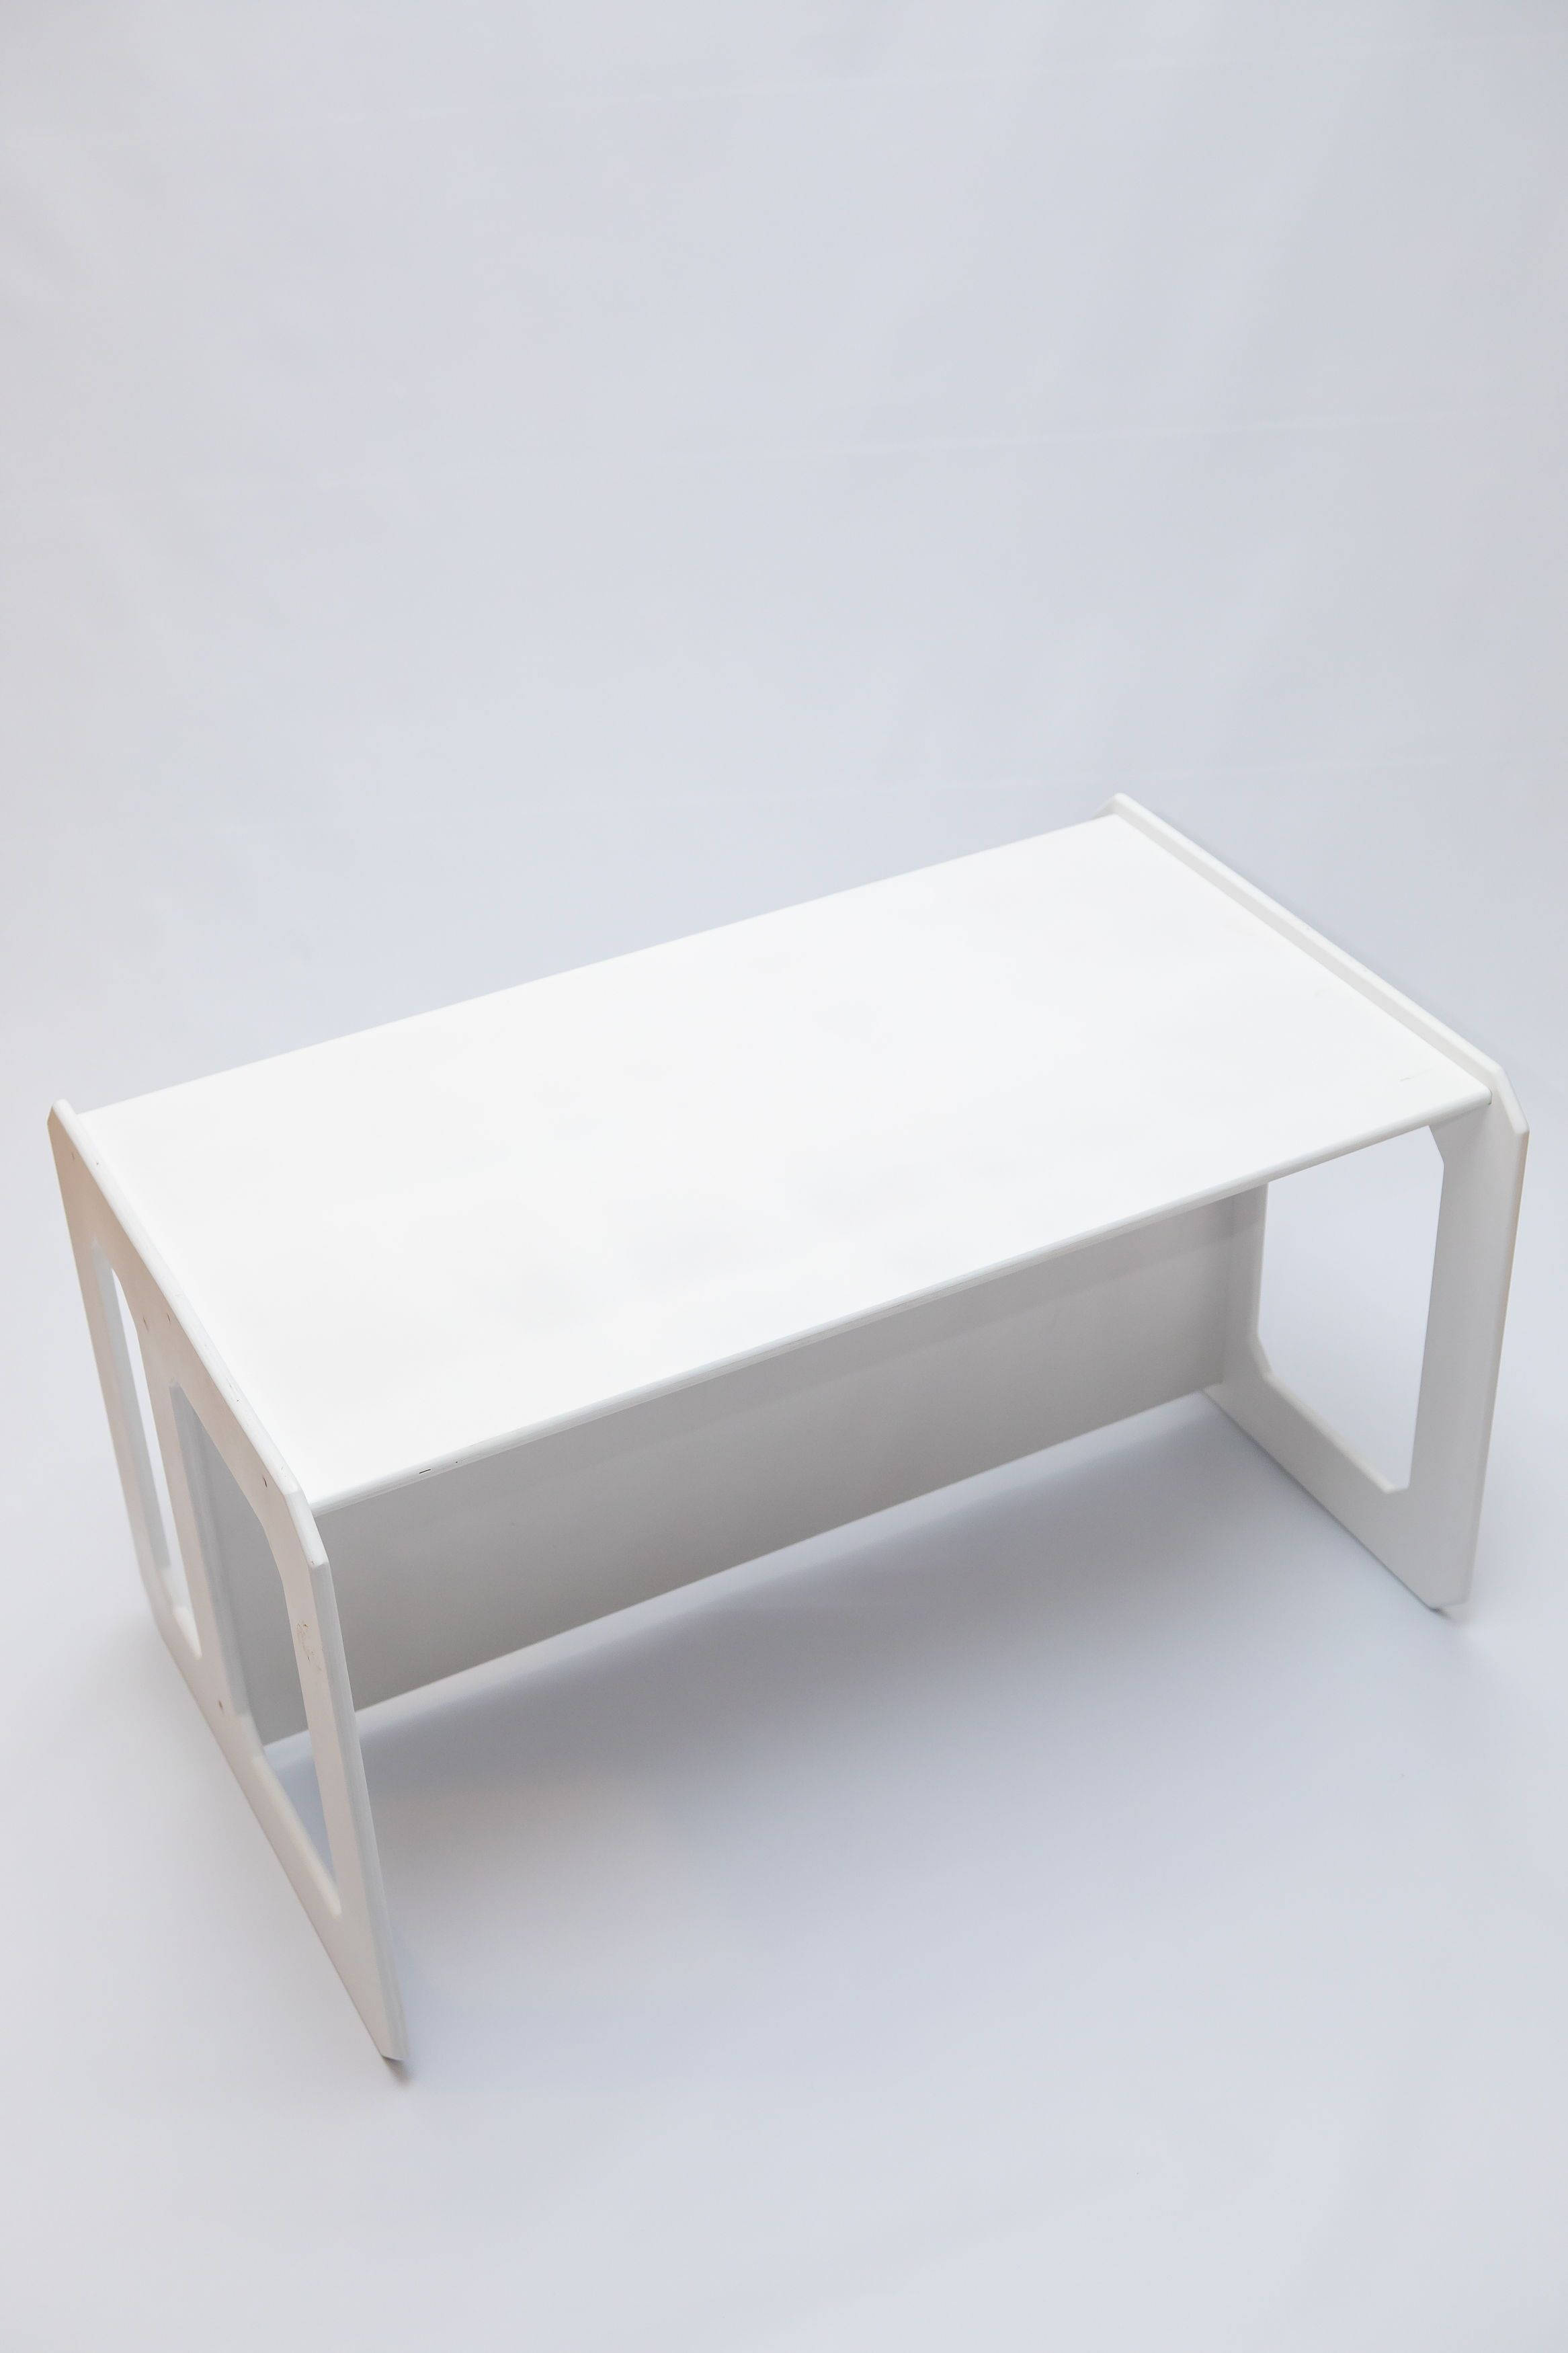 Kids Table Montessori Table Kids Wooden Table Childrens Table Etsy In 2020 White Kids Chair Kids Wooden Table Kids Wooden Chair